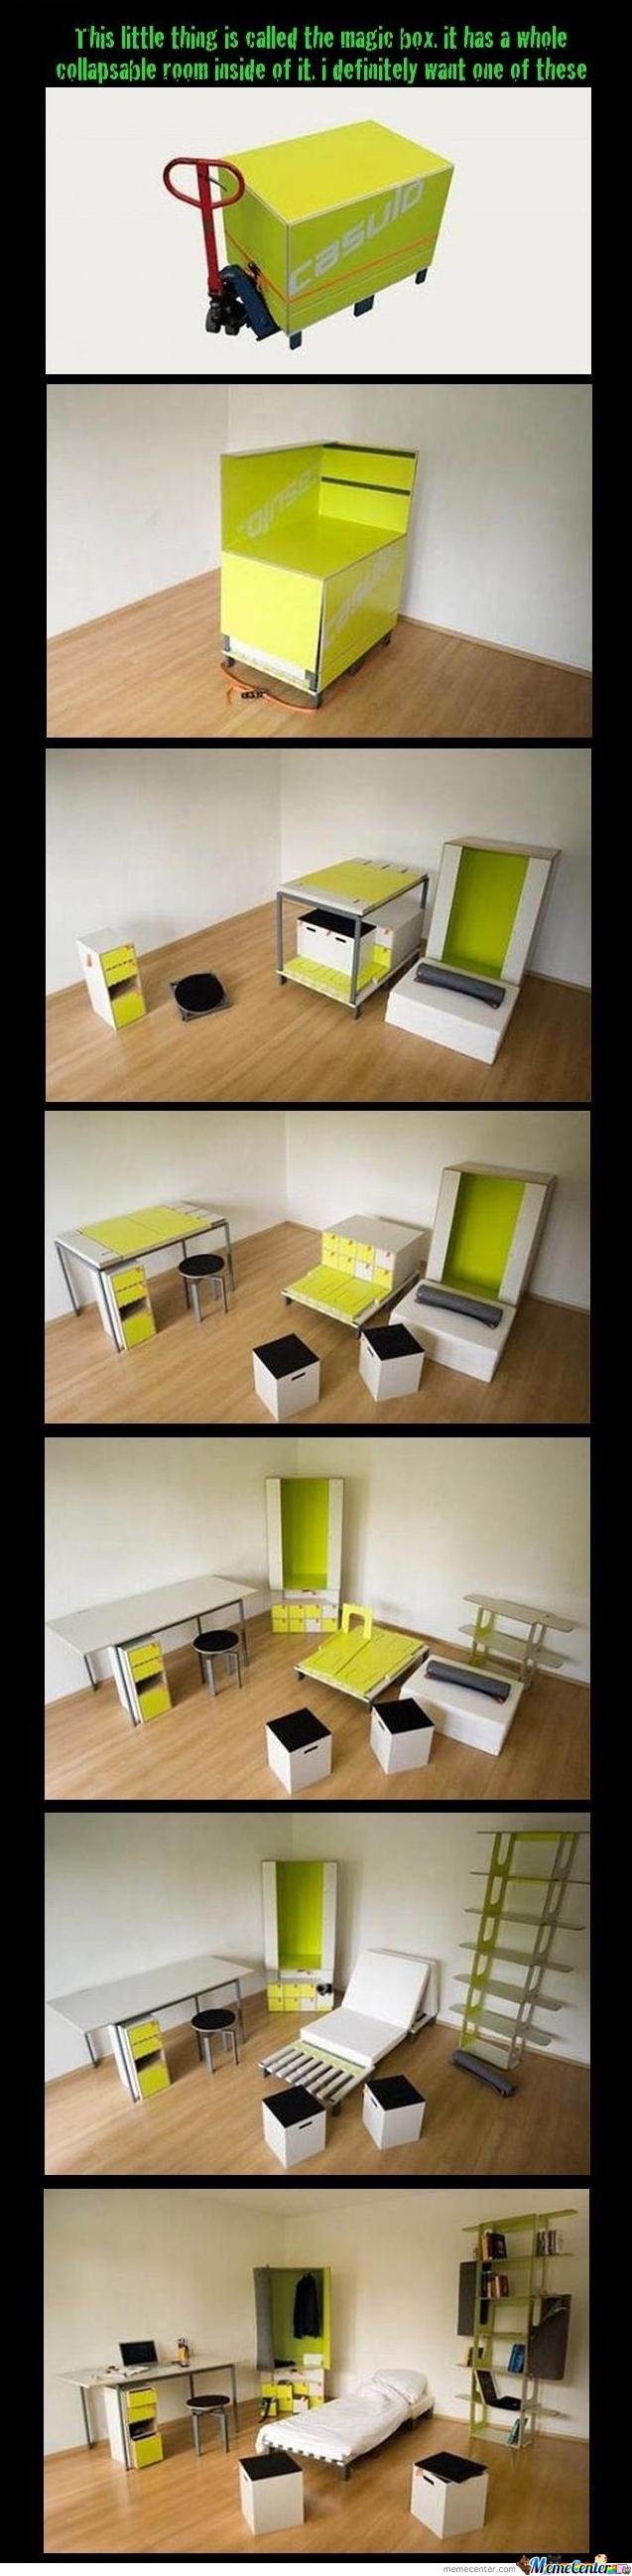 Bedroom in a box by colmulhall meme center - Room in a box casulo ...